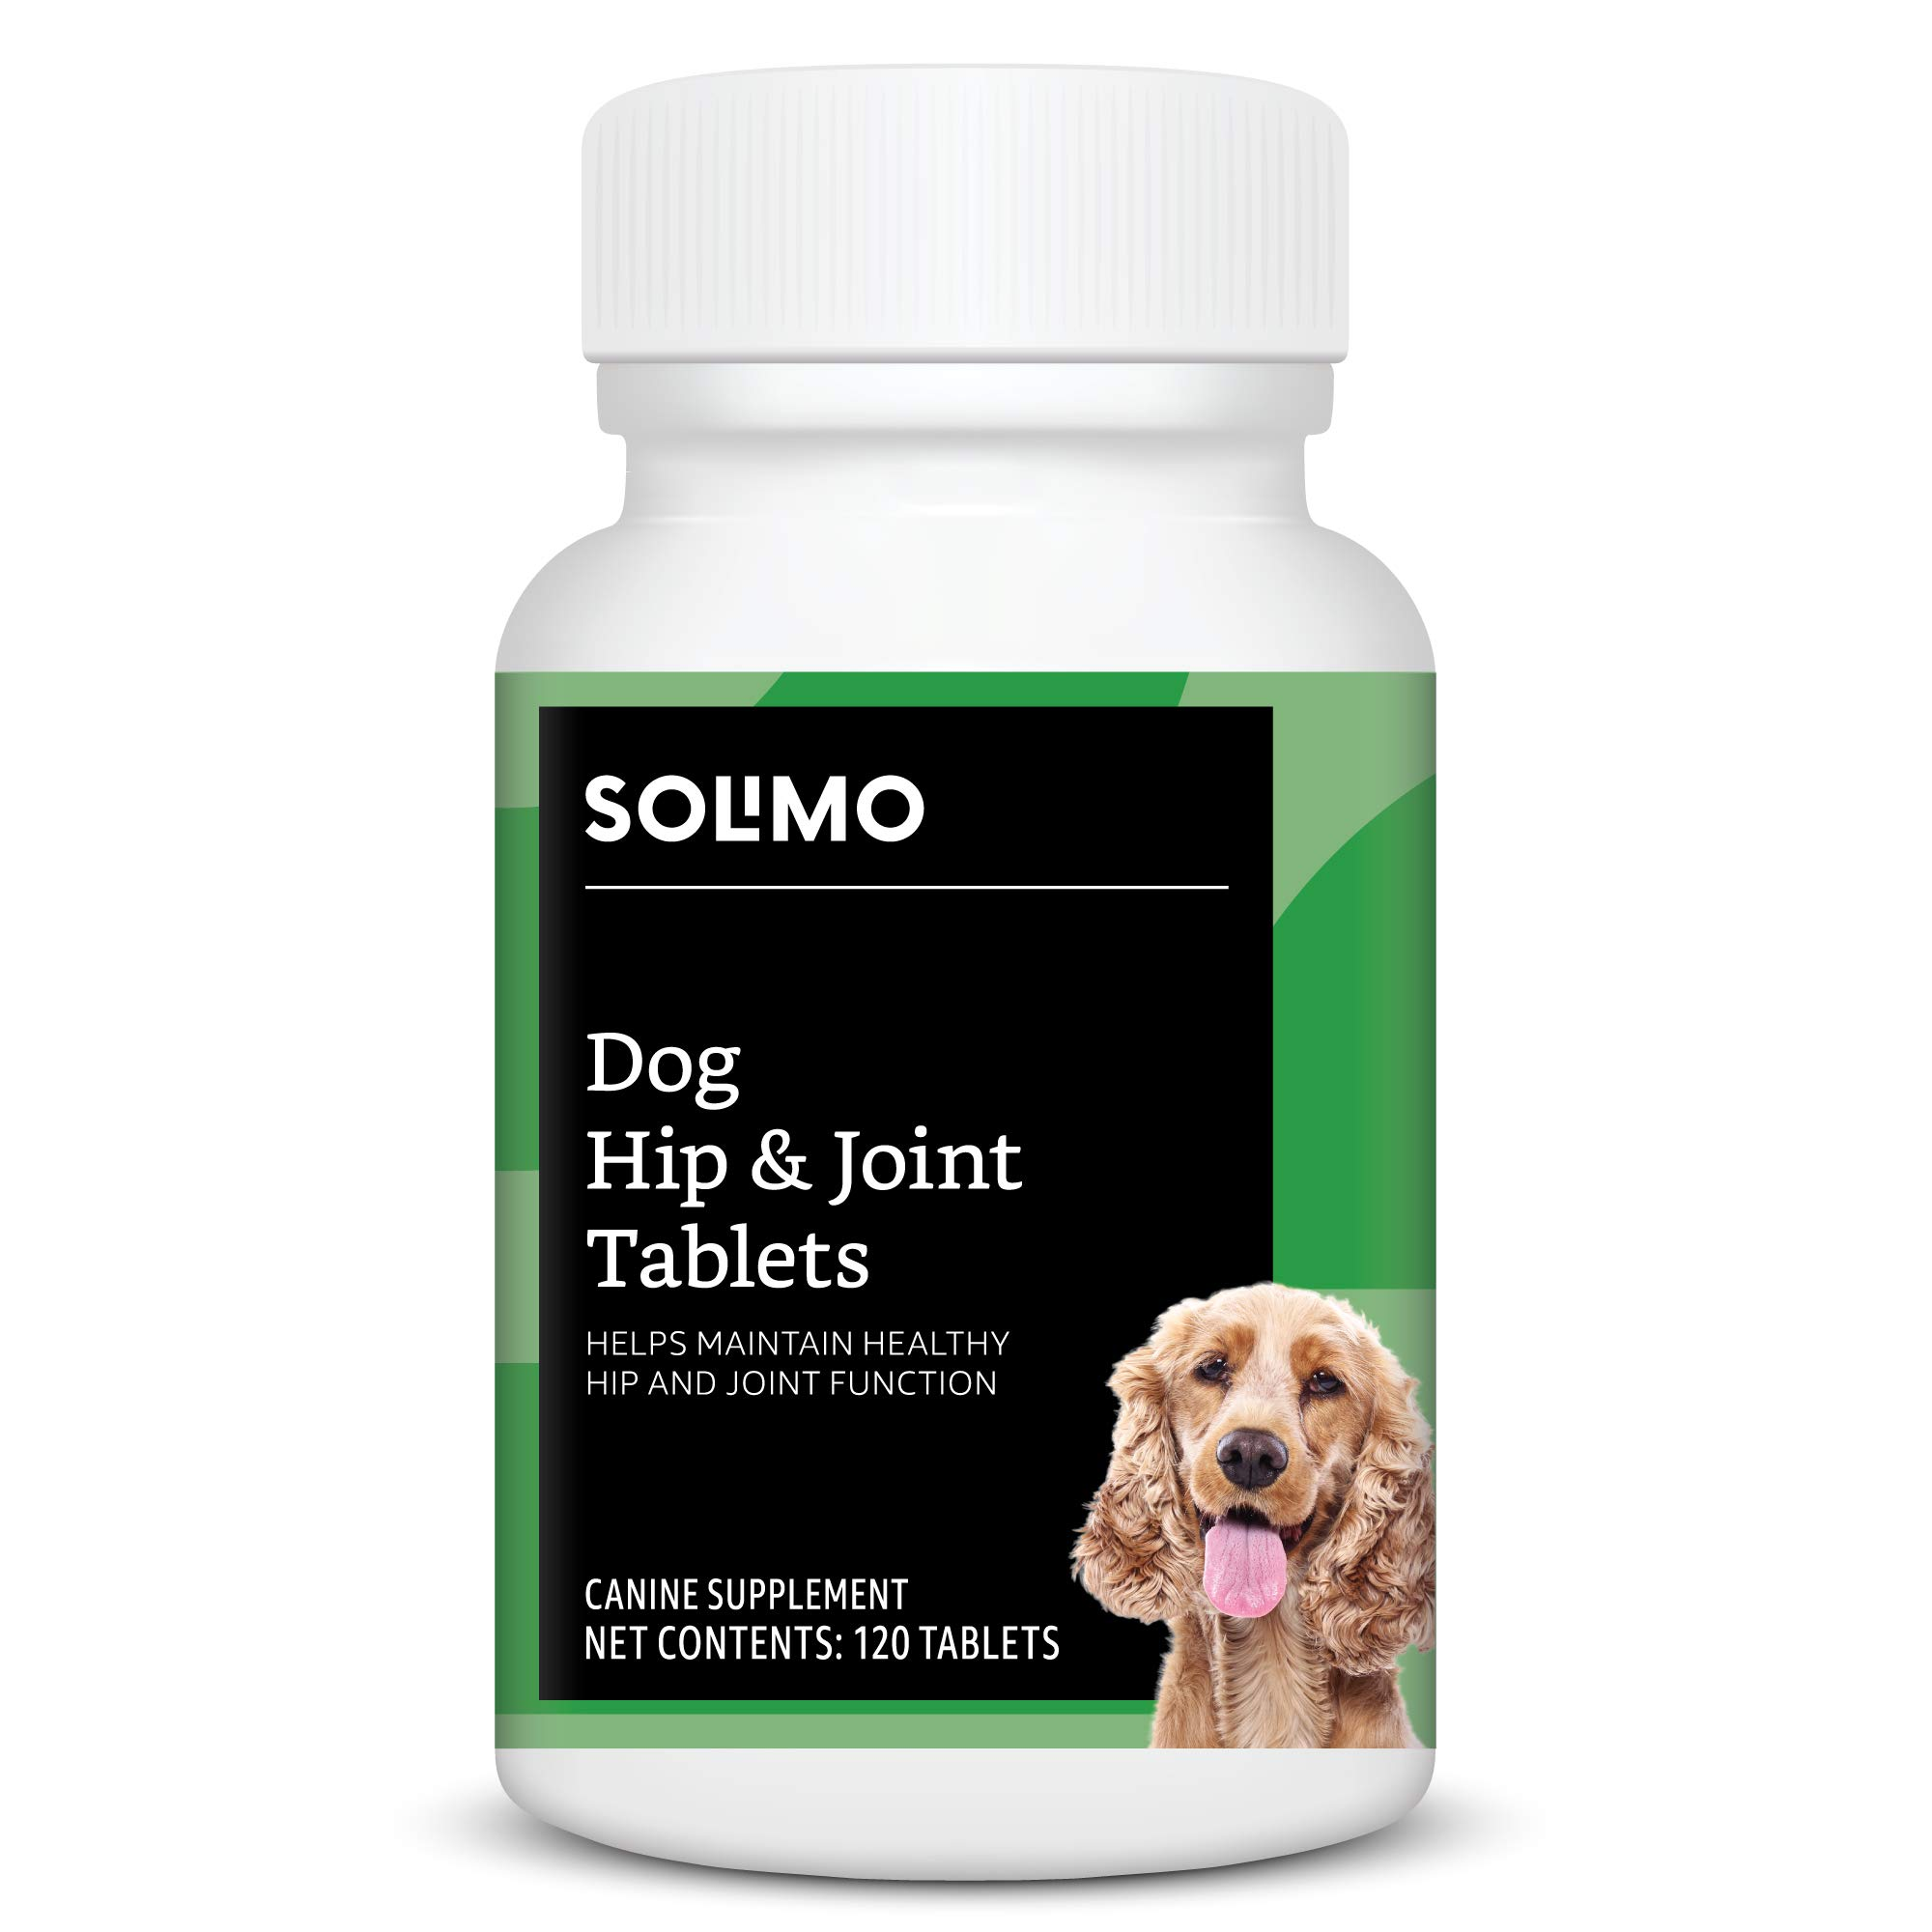 Amazon Brand - Solimo Dog Hip & Joint Chewable Tablets, Duck Flavored, 120 Count by Solimo